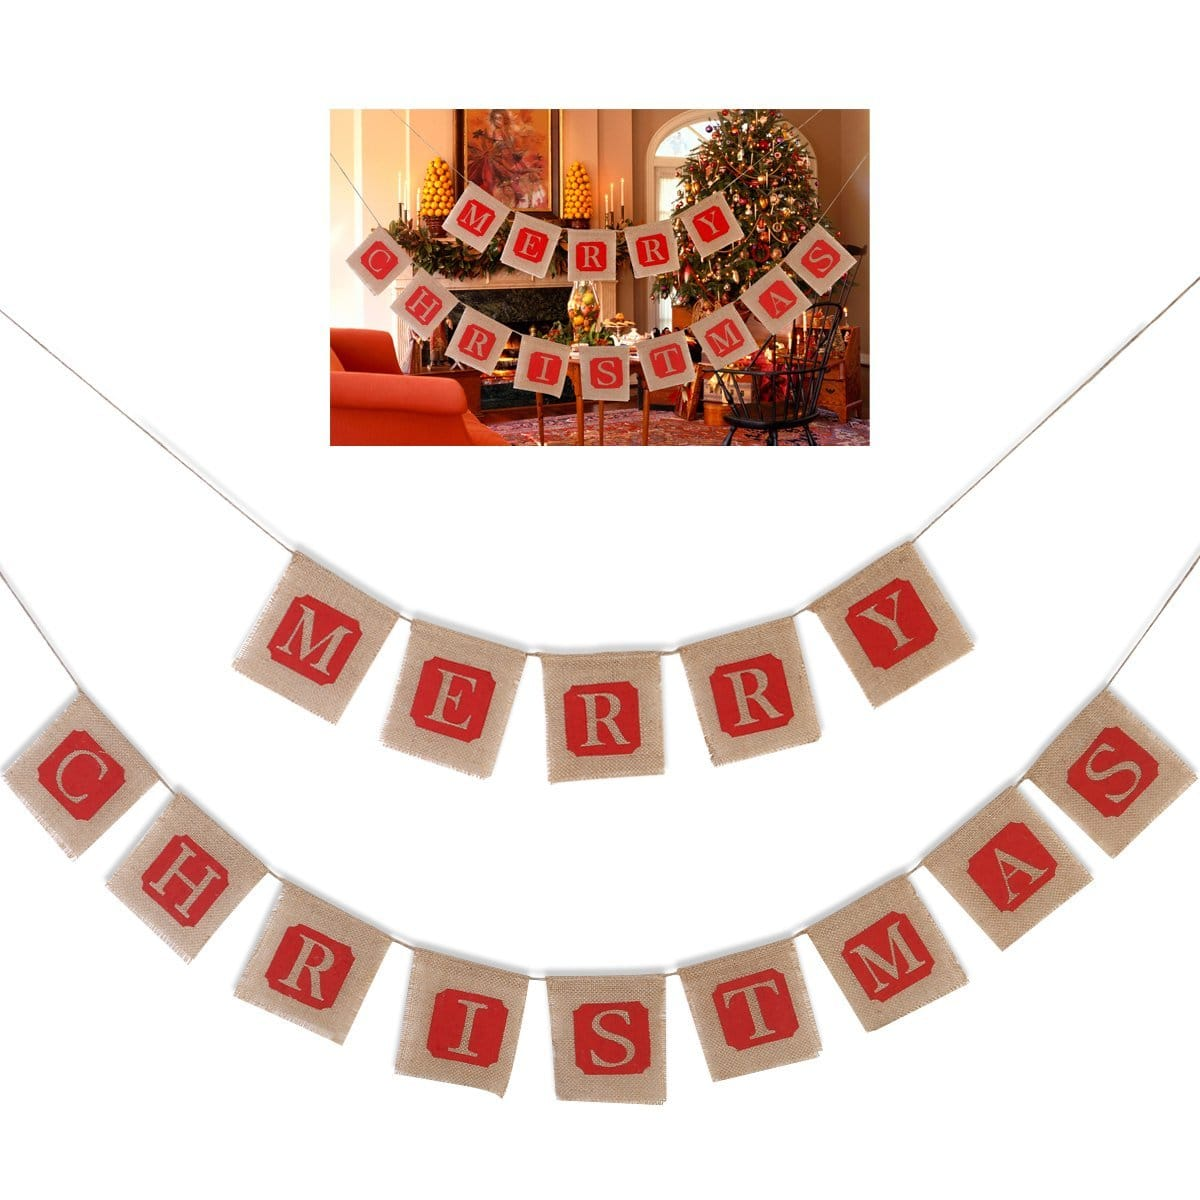 Save upto 43% OFF NOW - Merry Christmas Burlap Banners Garlands for Holiday Party Decoration $2.39